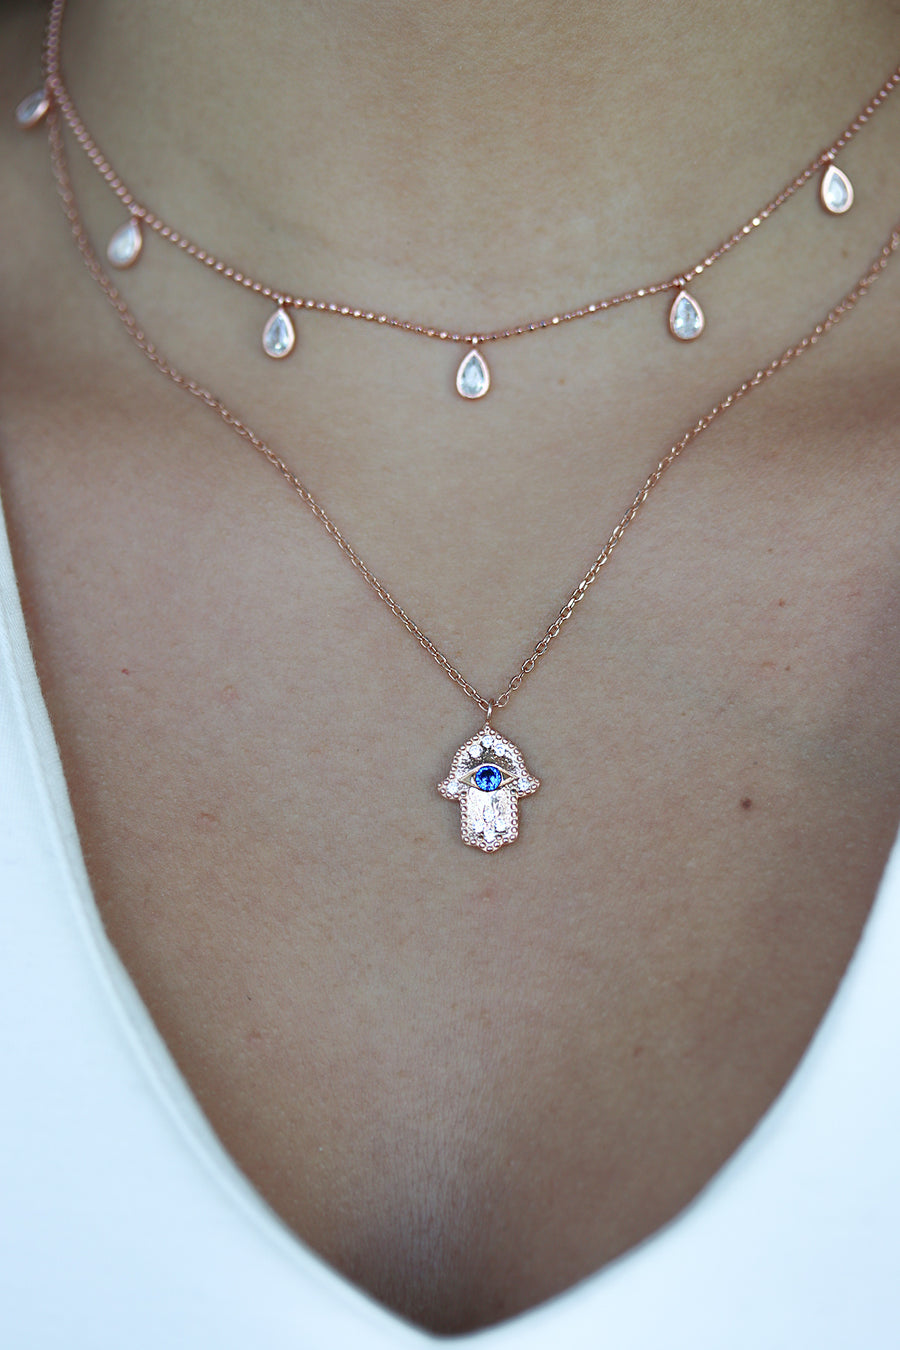 Floating Crystals Necklace - Small